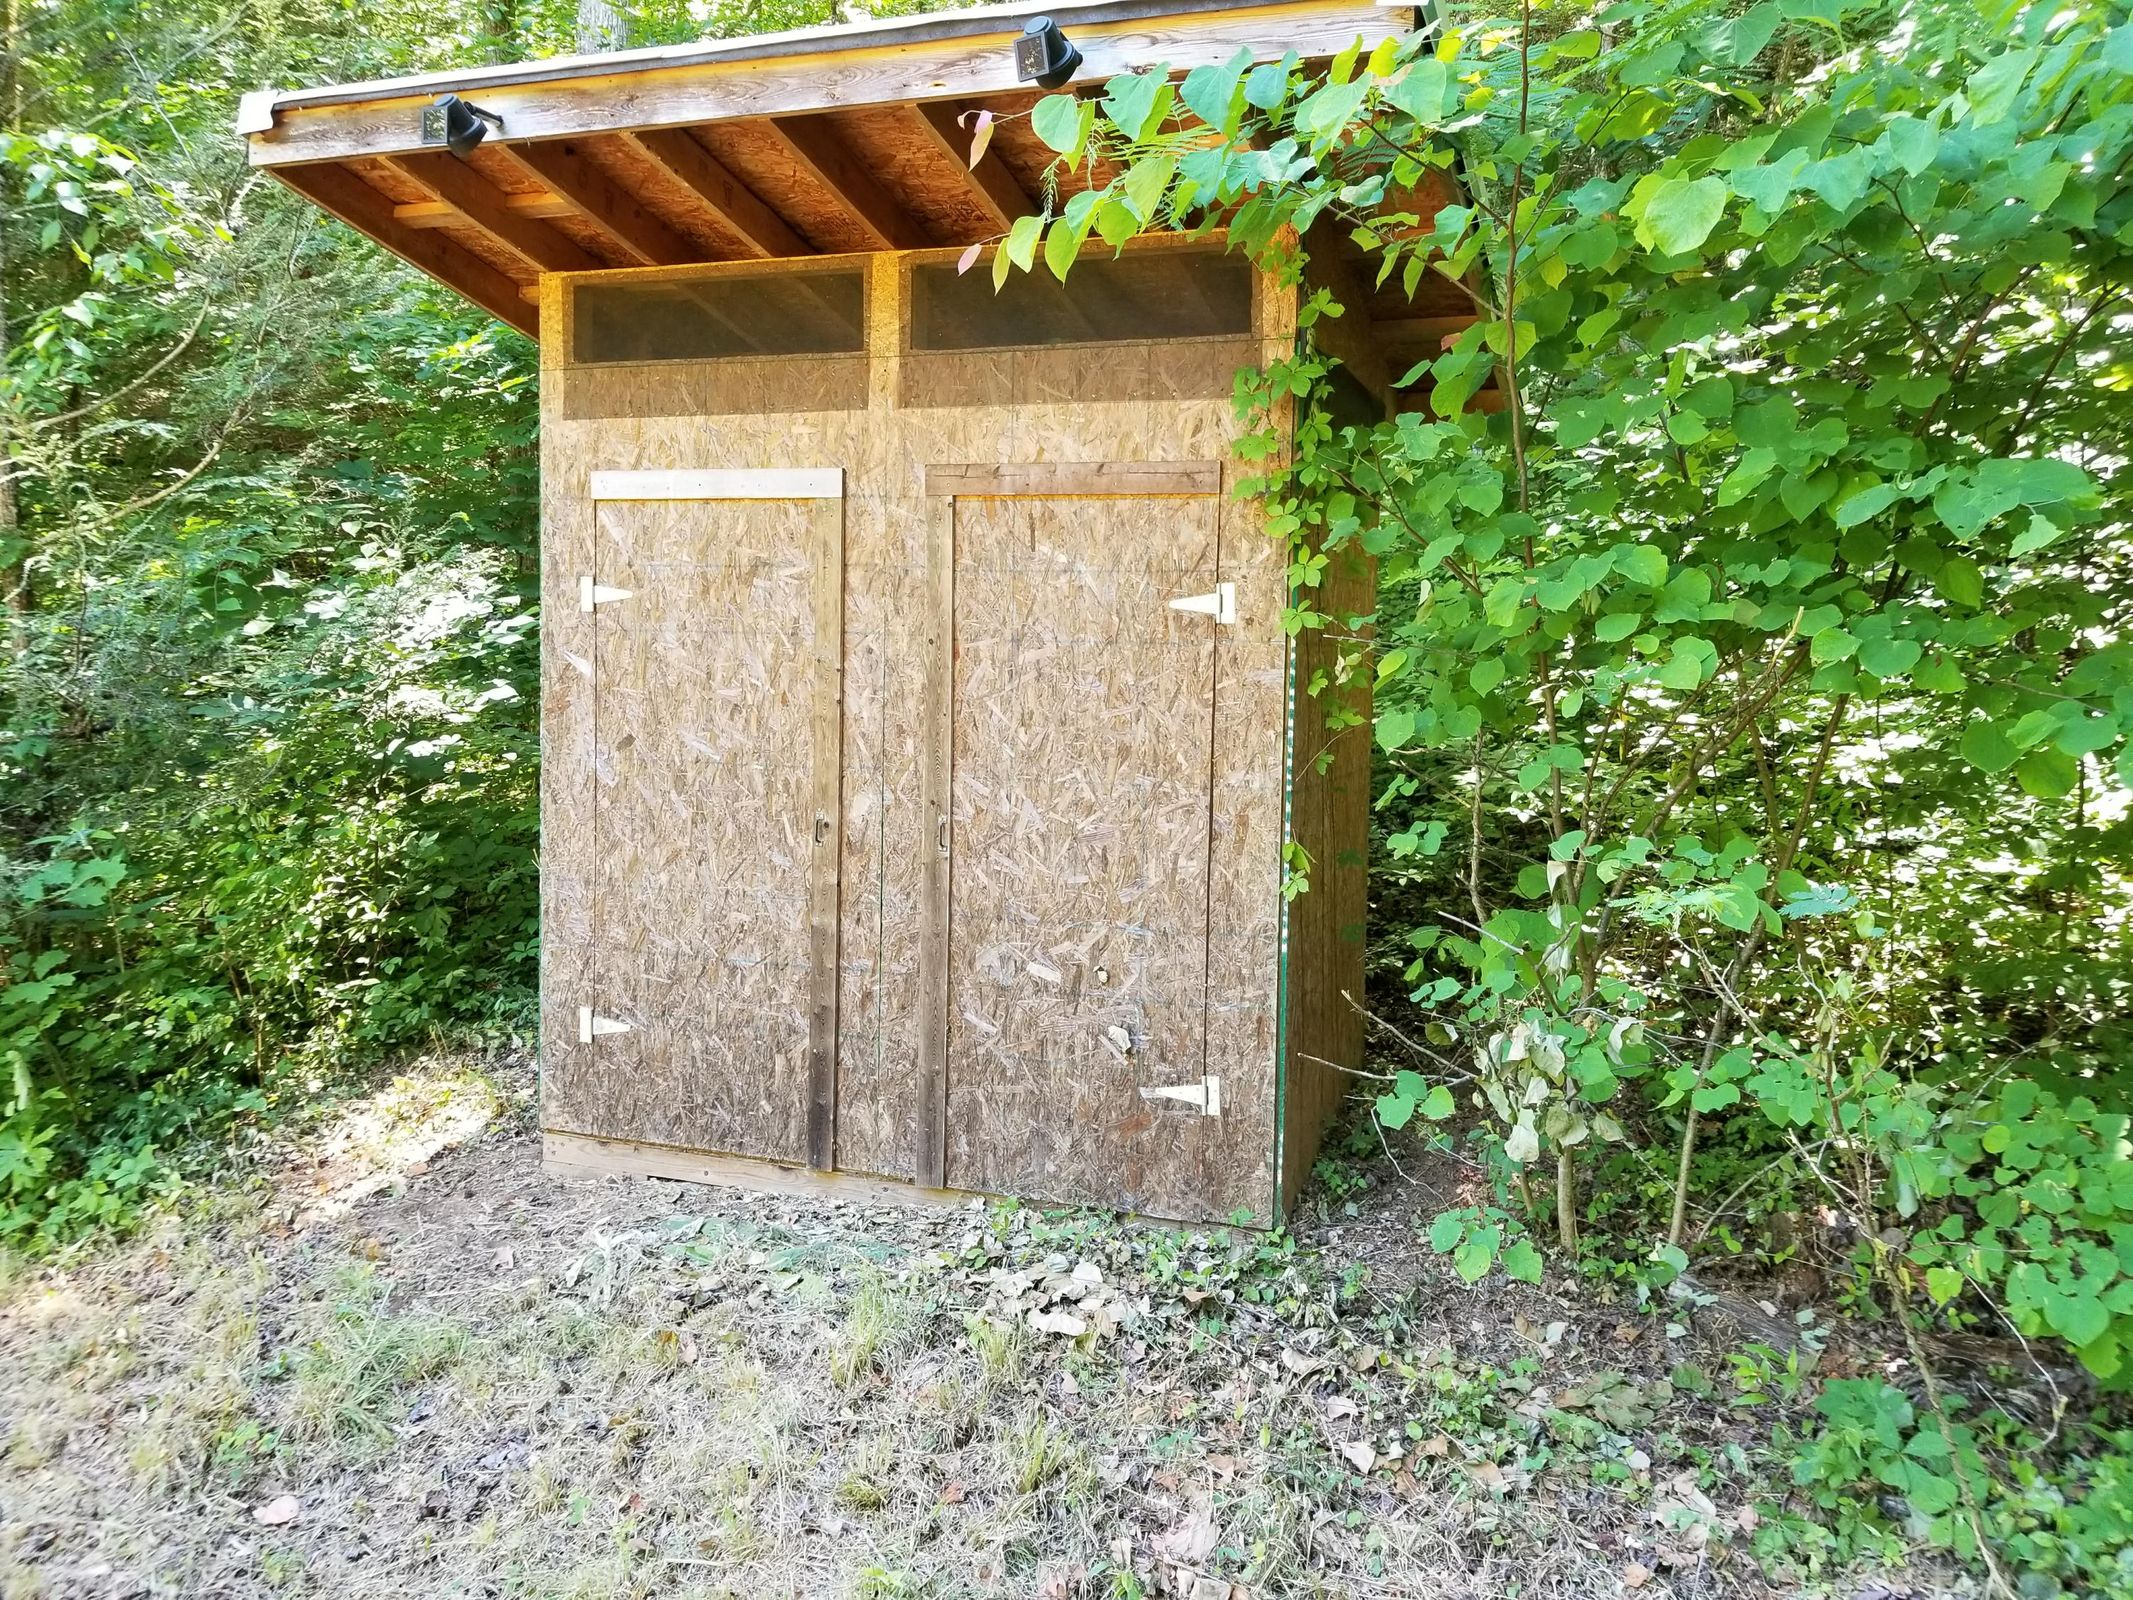 His and Her Outhouse